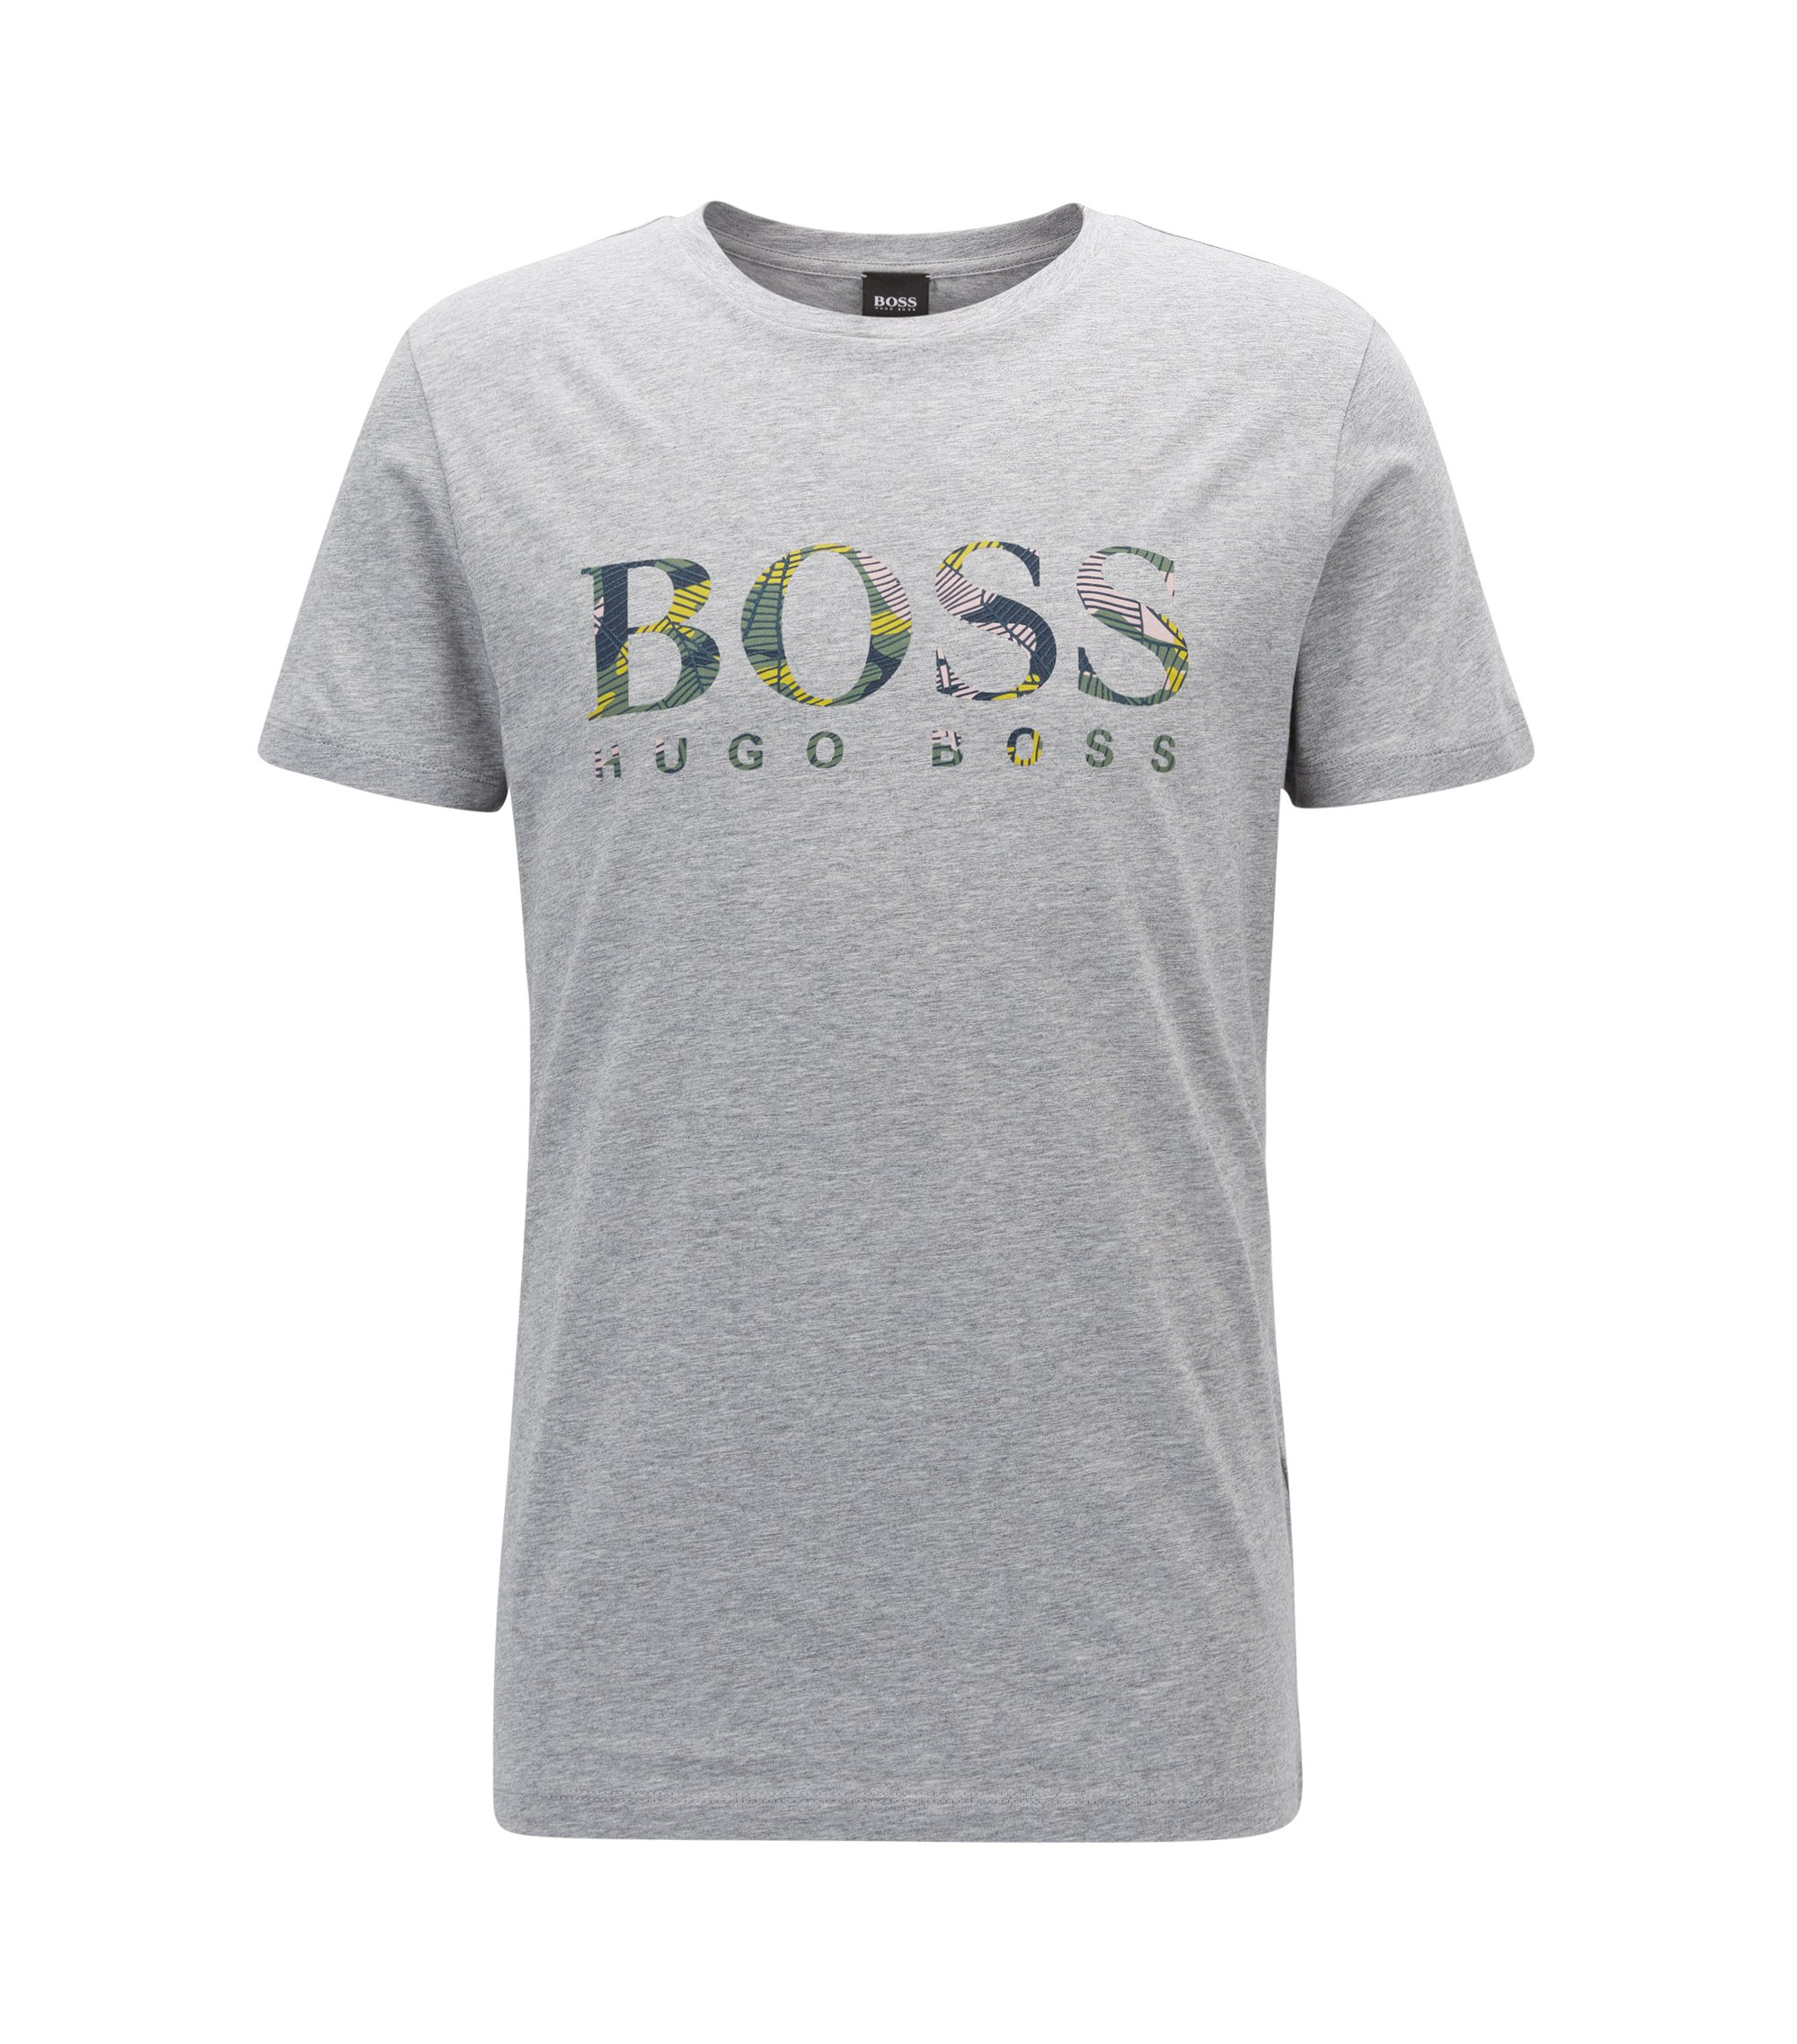 Cotton T-shirt in a relaxed fit with logo, Grey